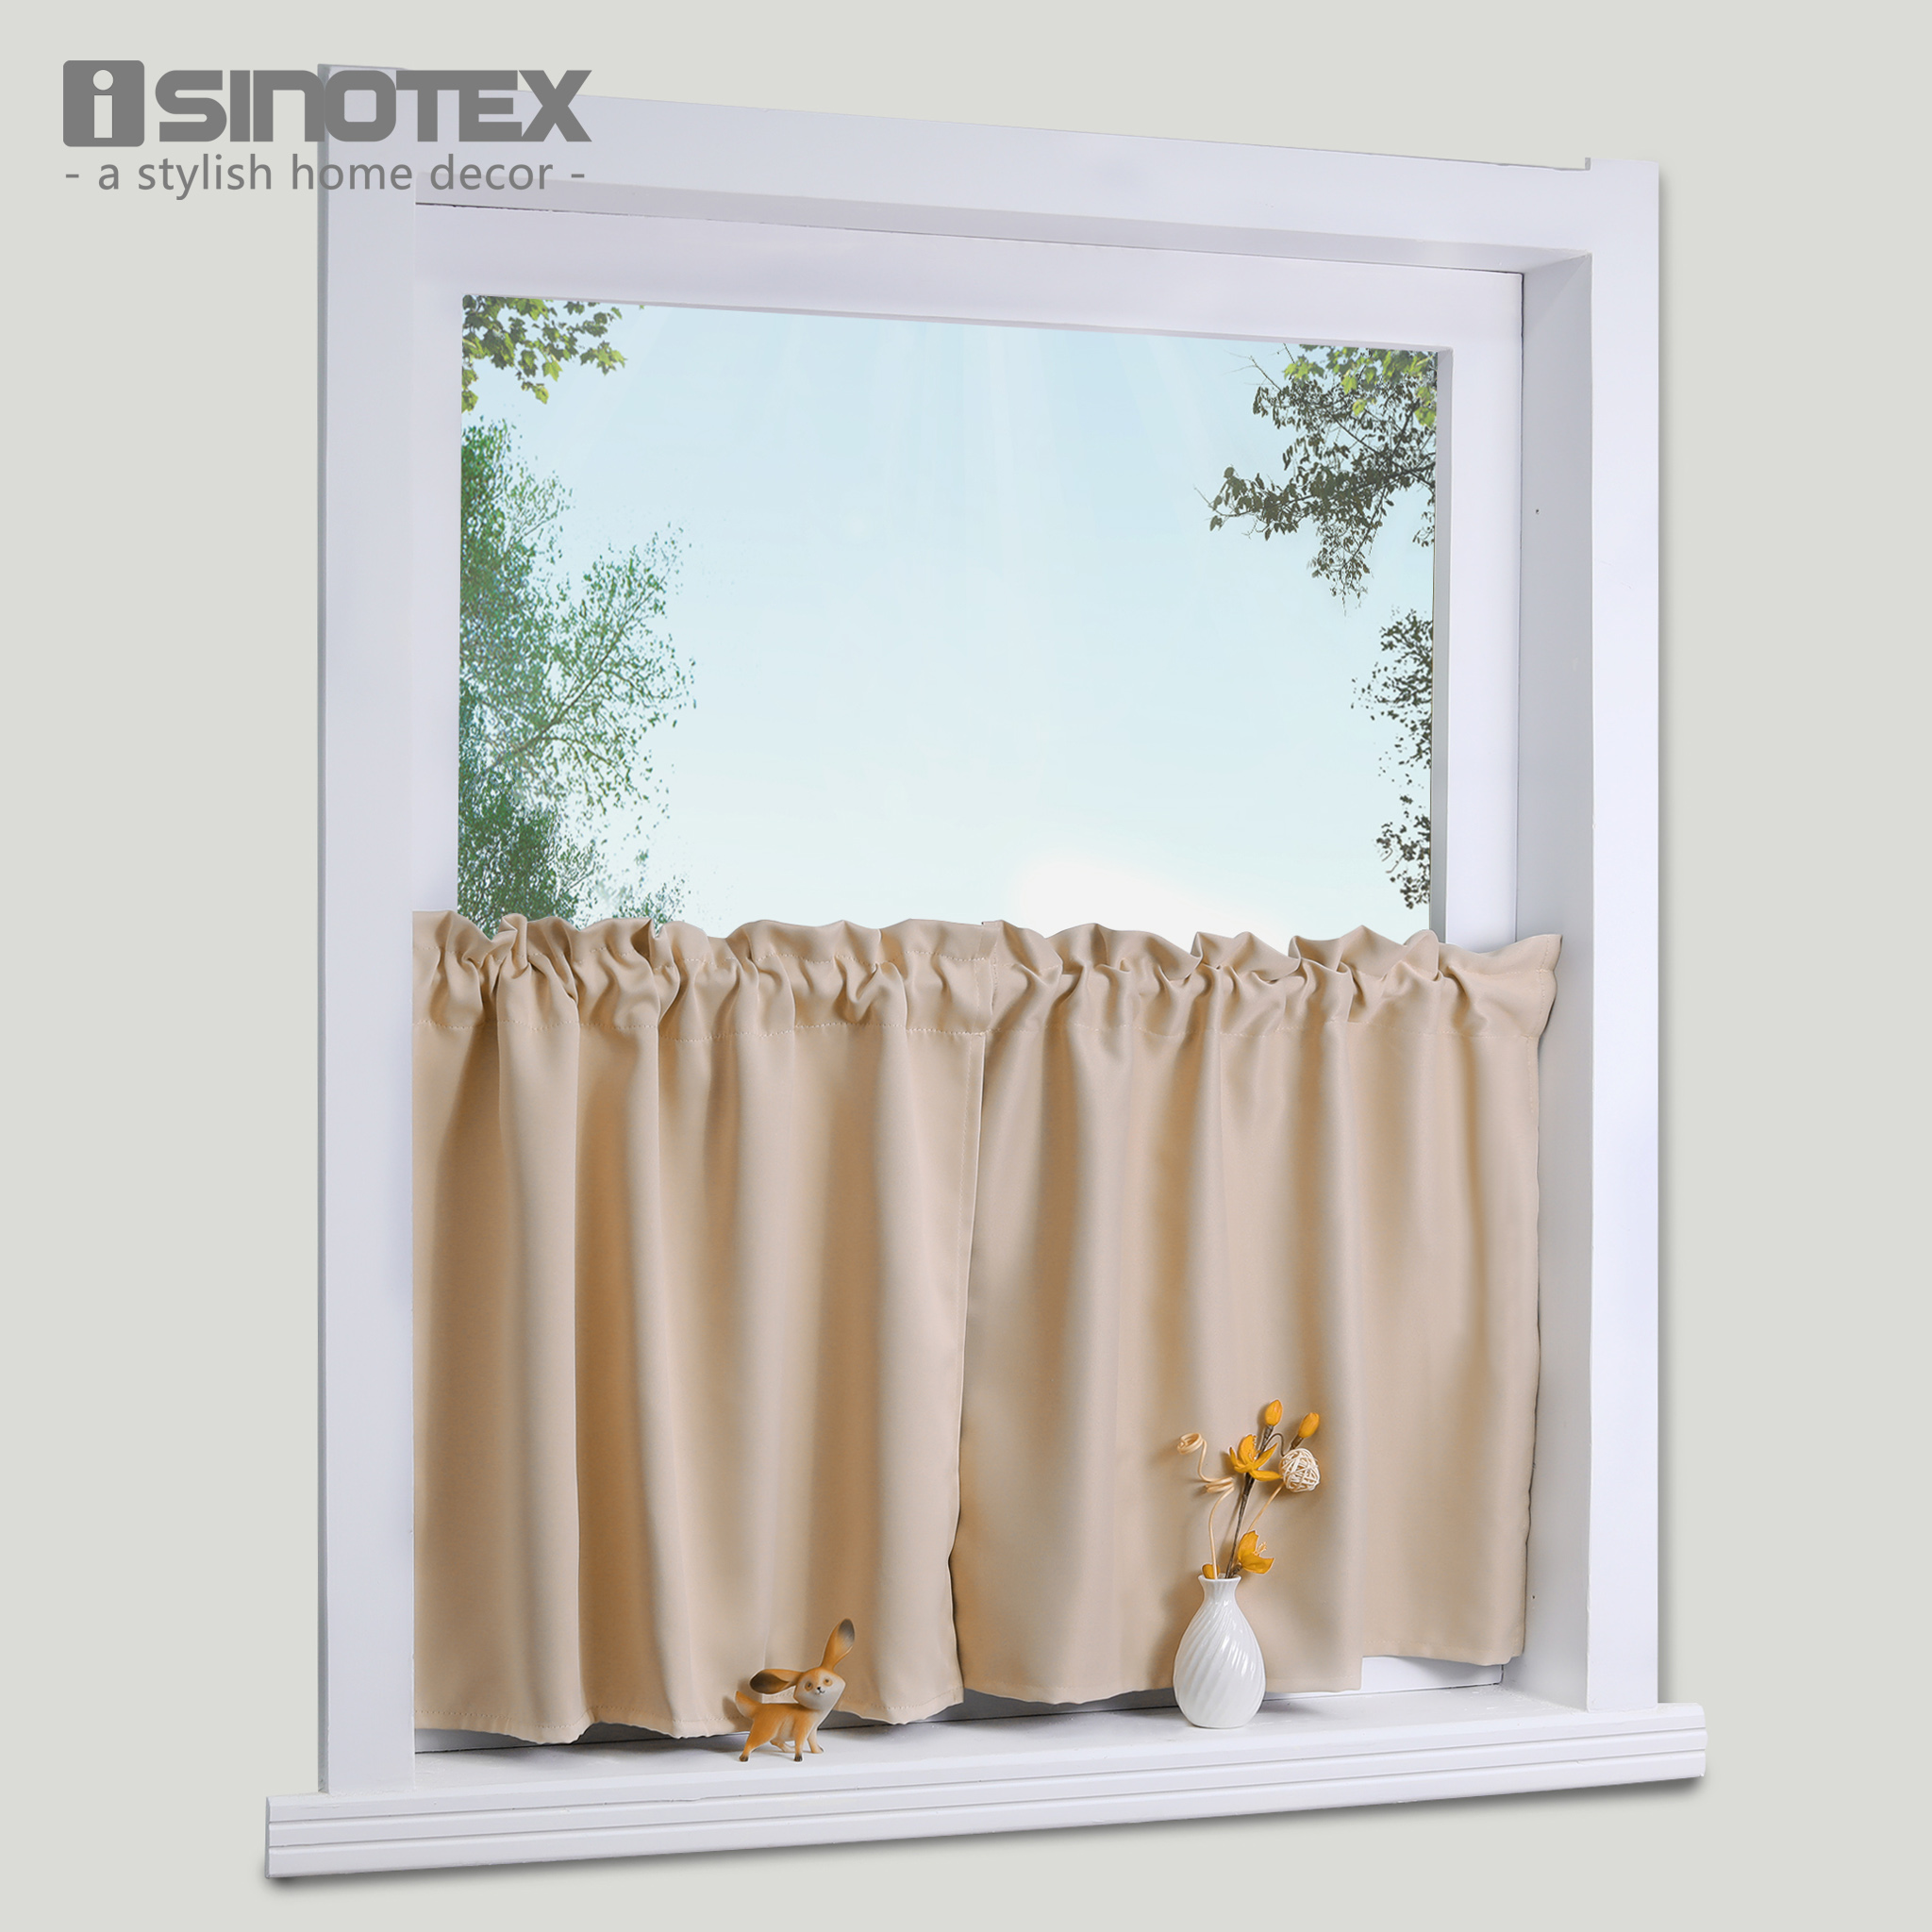 in ideas contemporary window bay trend kitchen dining windows treatments decoration for minimalist room curtain